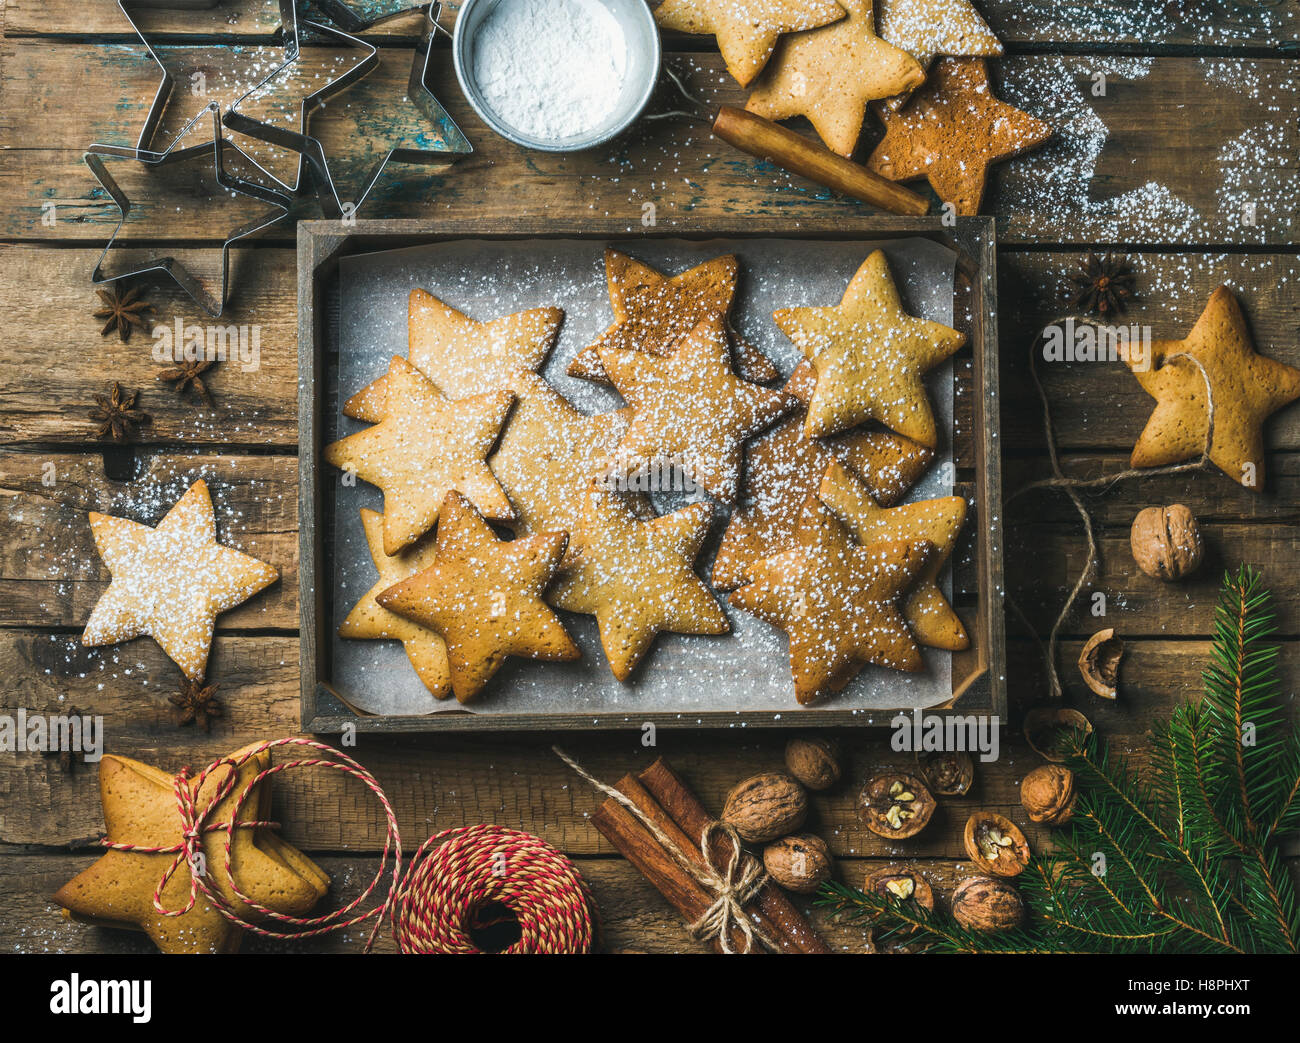 Gingerbread star shaped cookies in wooden tray with baking paper - Stock Image